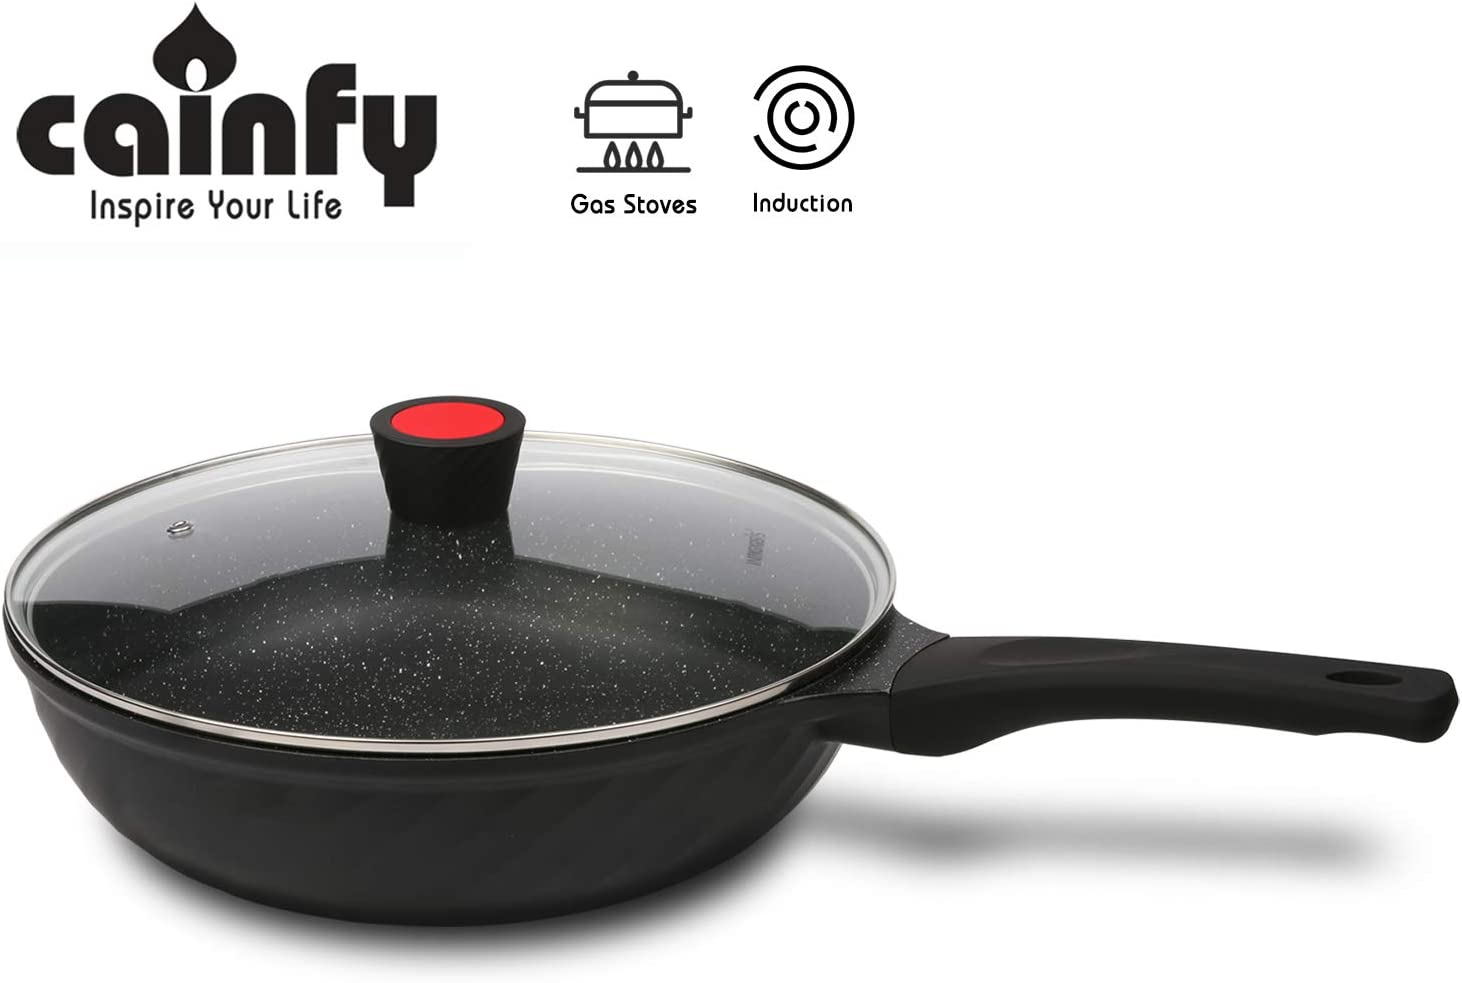 Cainfy 12Inch/30cm Wok Pan with Lid,Die Cast Aluminum Nonstick Deep Stir Fry Pan,Induction Flat Bottom,Traditional Chinese Skillet Wok,Soft Touch Bakelite Handle,Dishwasher Safe,PFOA Free Coating